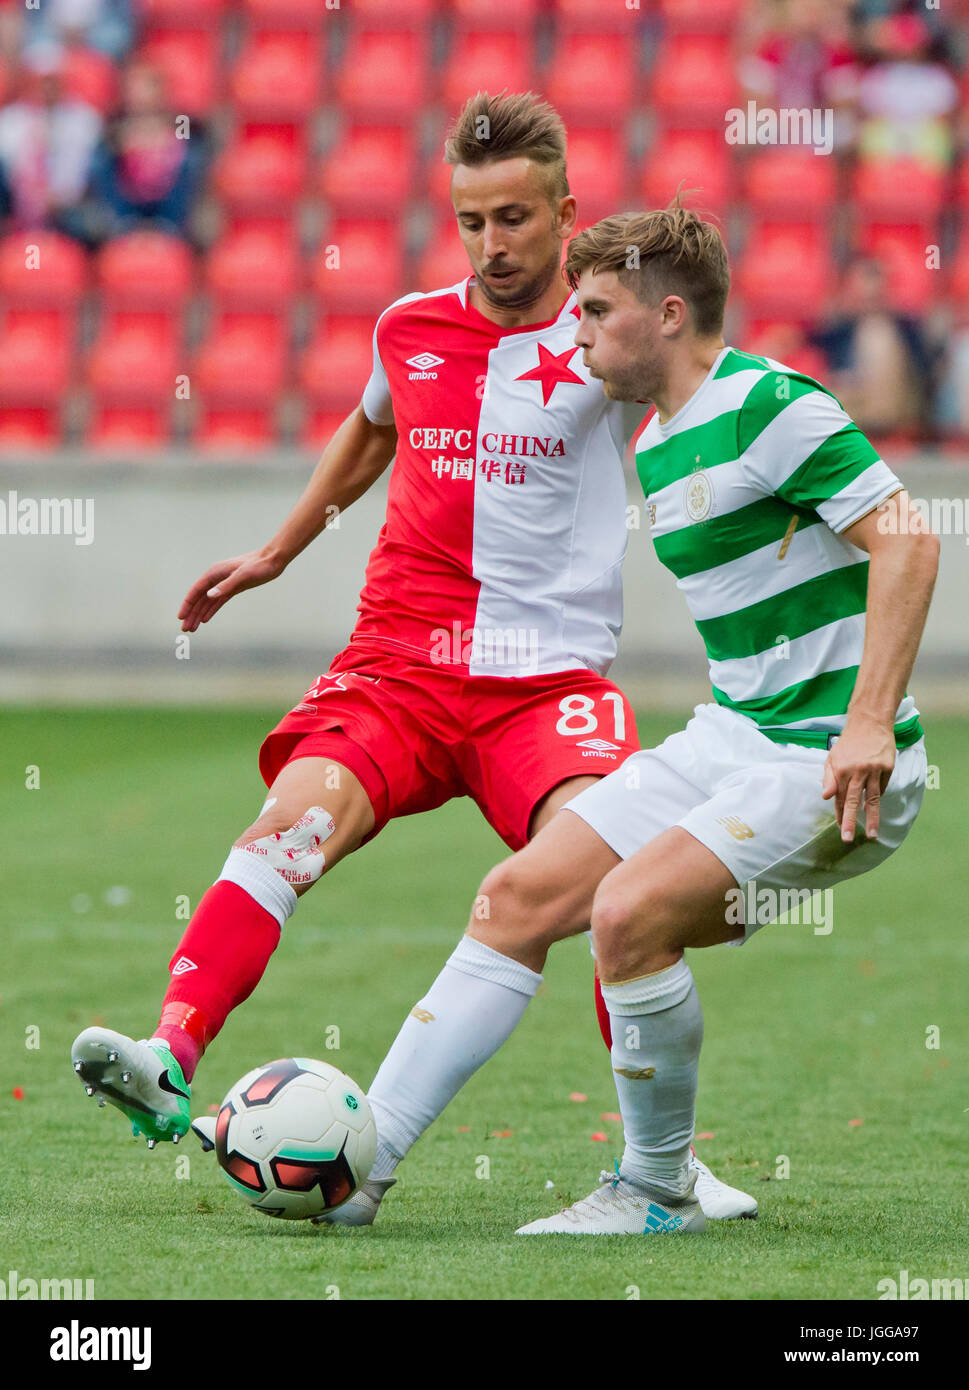 Prague, Czech Republic. 4th July, 2017. Dusan Svento of Slavia, left, and James Forrest of Celtic in action during - Stock Image